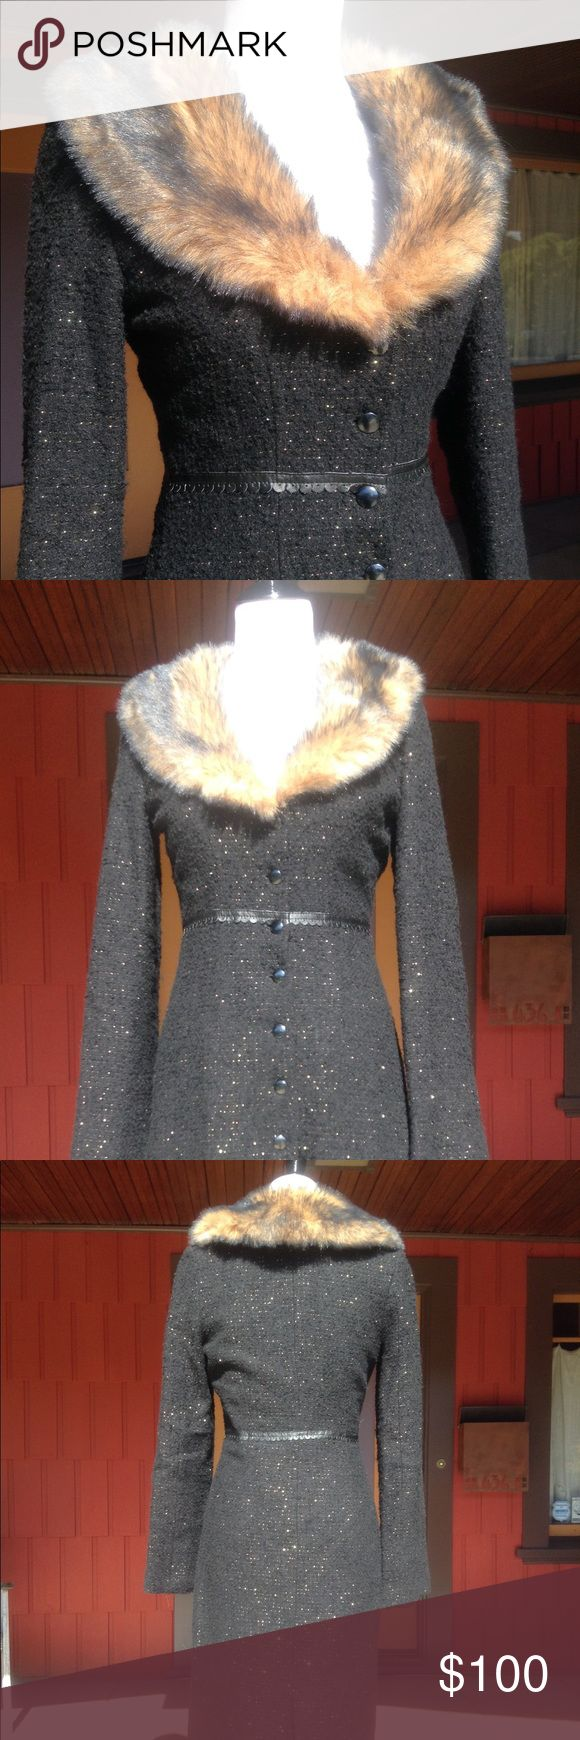 Betsey Johnson blk w gold flecks furry color coat See pictures for how amazing this coat is with its details BJ is known for. It is perfect over vintage 30s/40s dresses - that is what I bought it for but chose to wear a vintage one I already had. Perfect condition. Size small Betsey Johnson Jackets & Coats